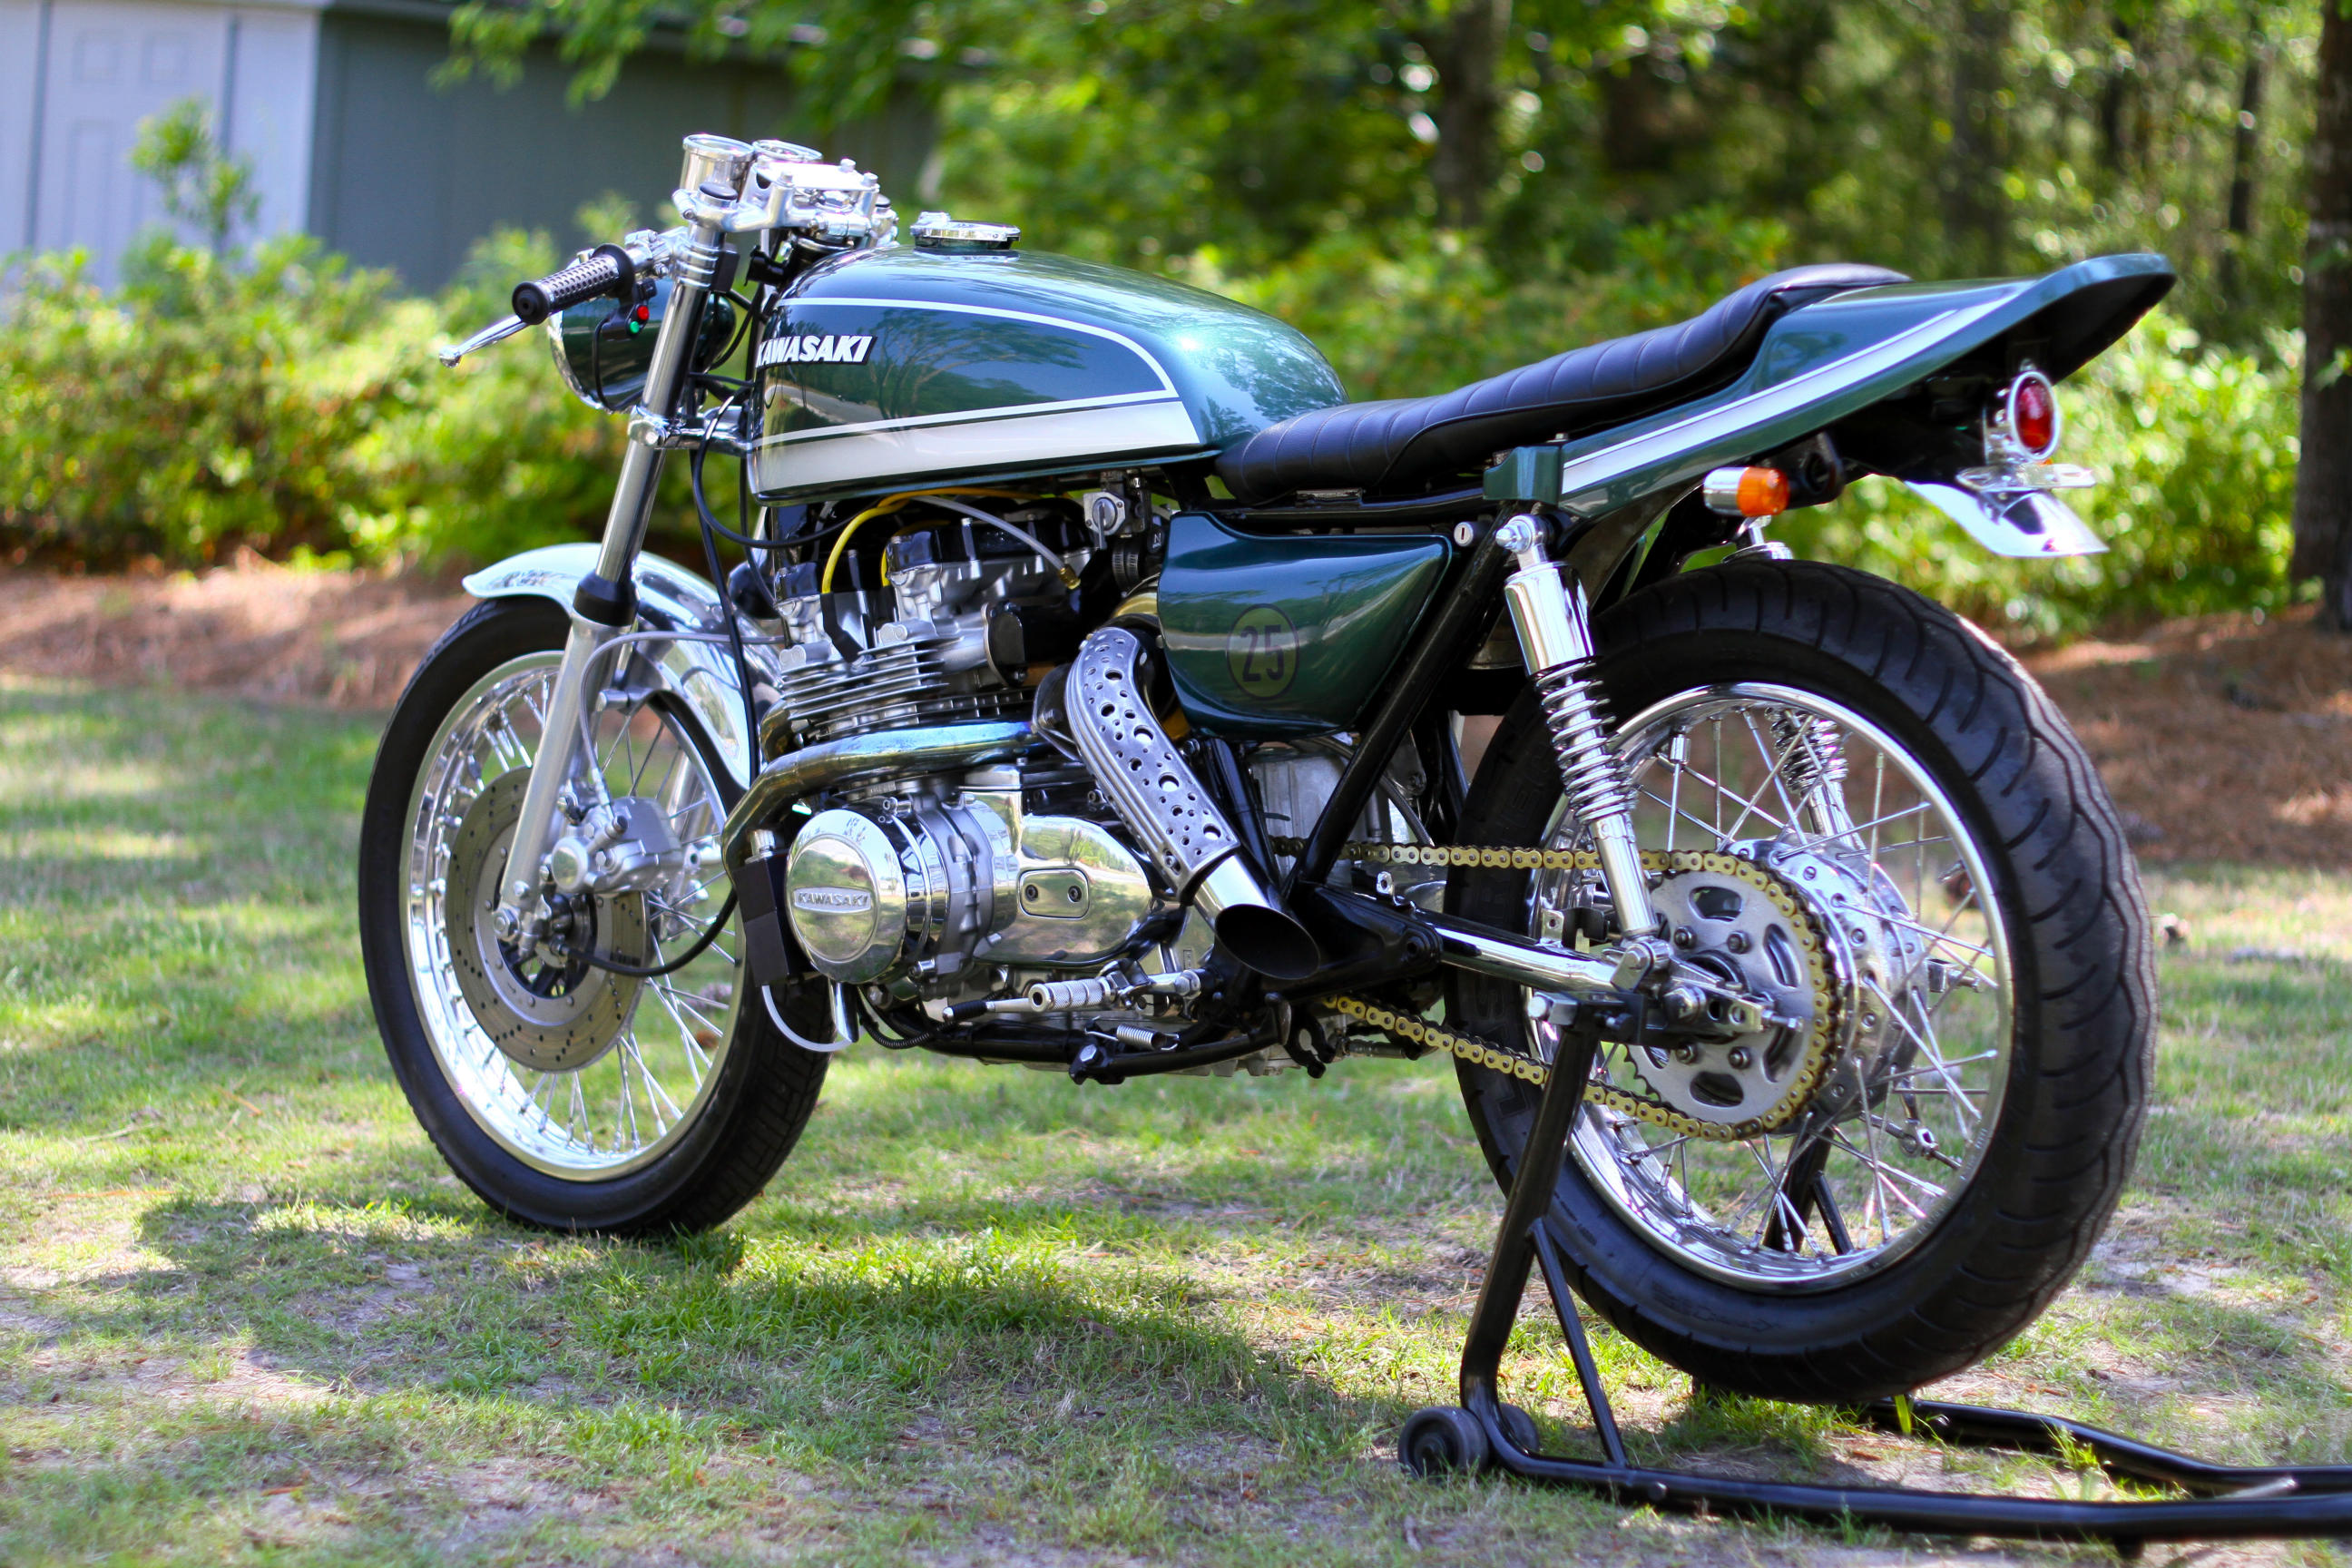 Kawasaki KZ650 Turbocharged